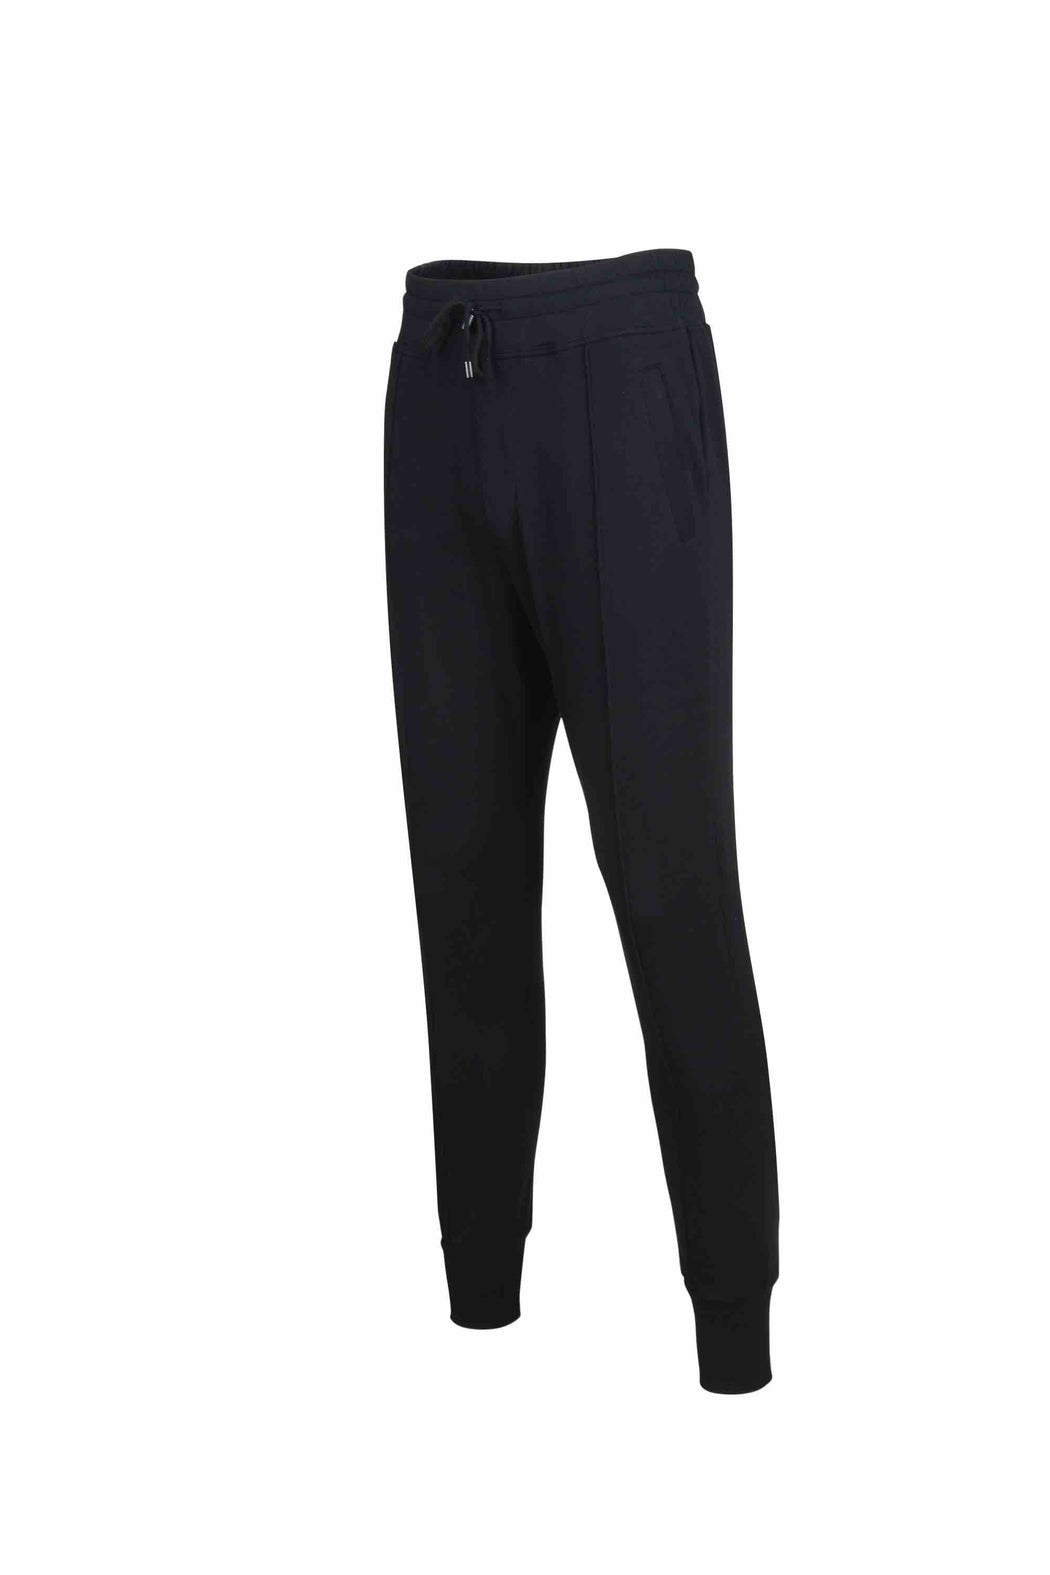 Side view of Men Easy Jogger Pants, made with Organic Cotton in Black